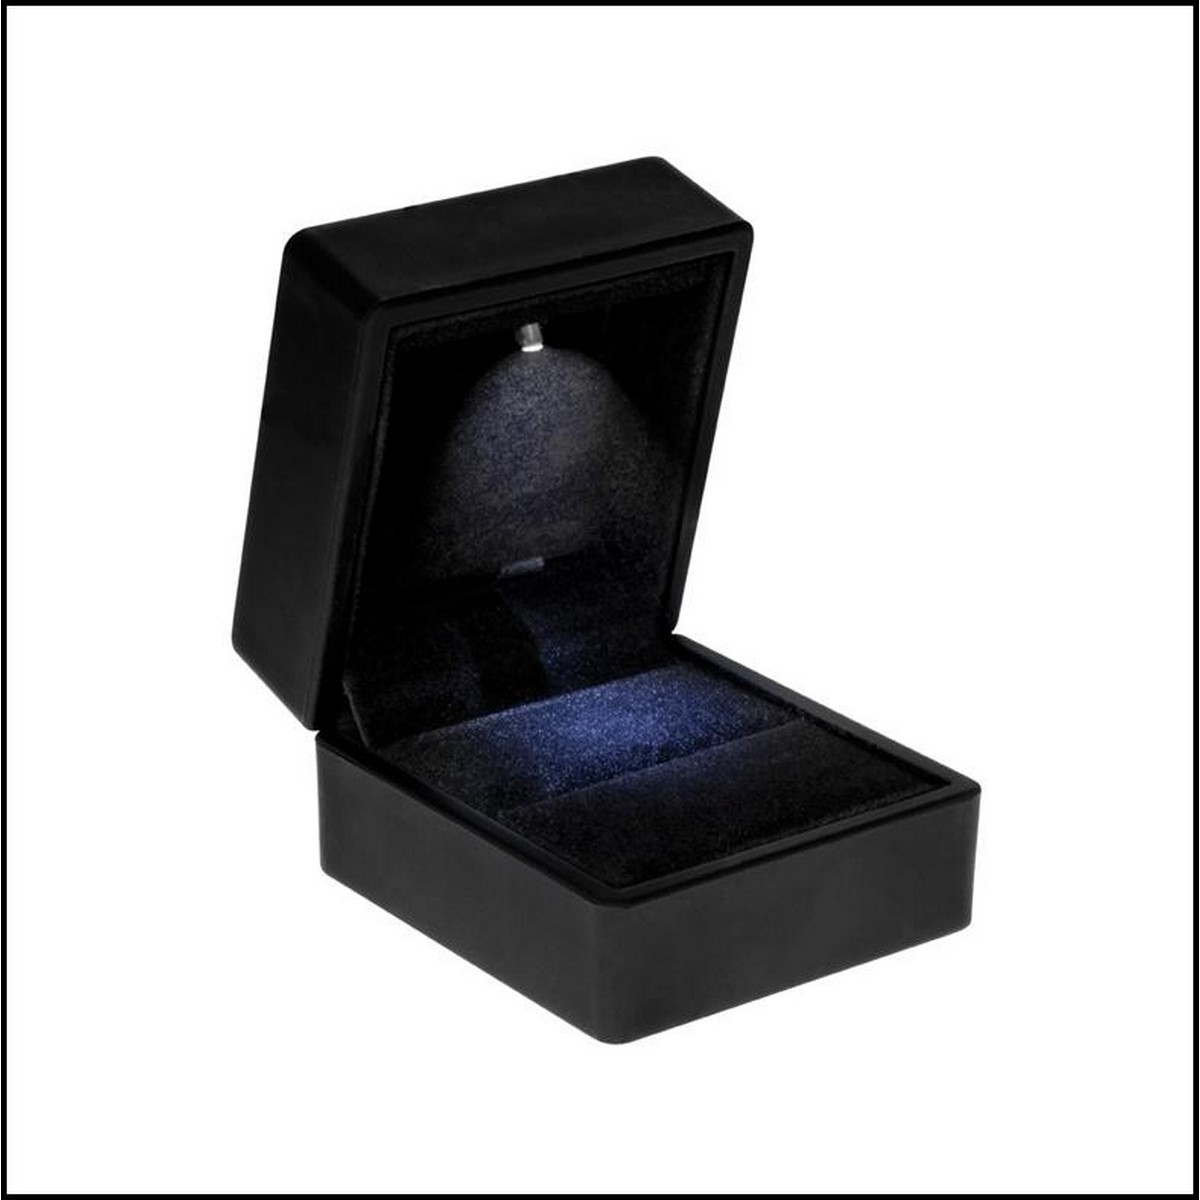 Spot Lighted Ring Box with LED for Proposal Engagement Jewelry Displaying Gift Holder Box Packaging